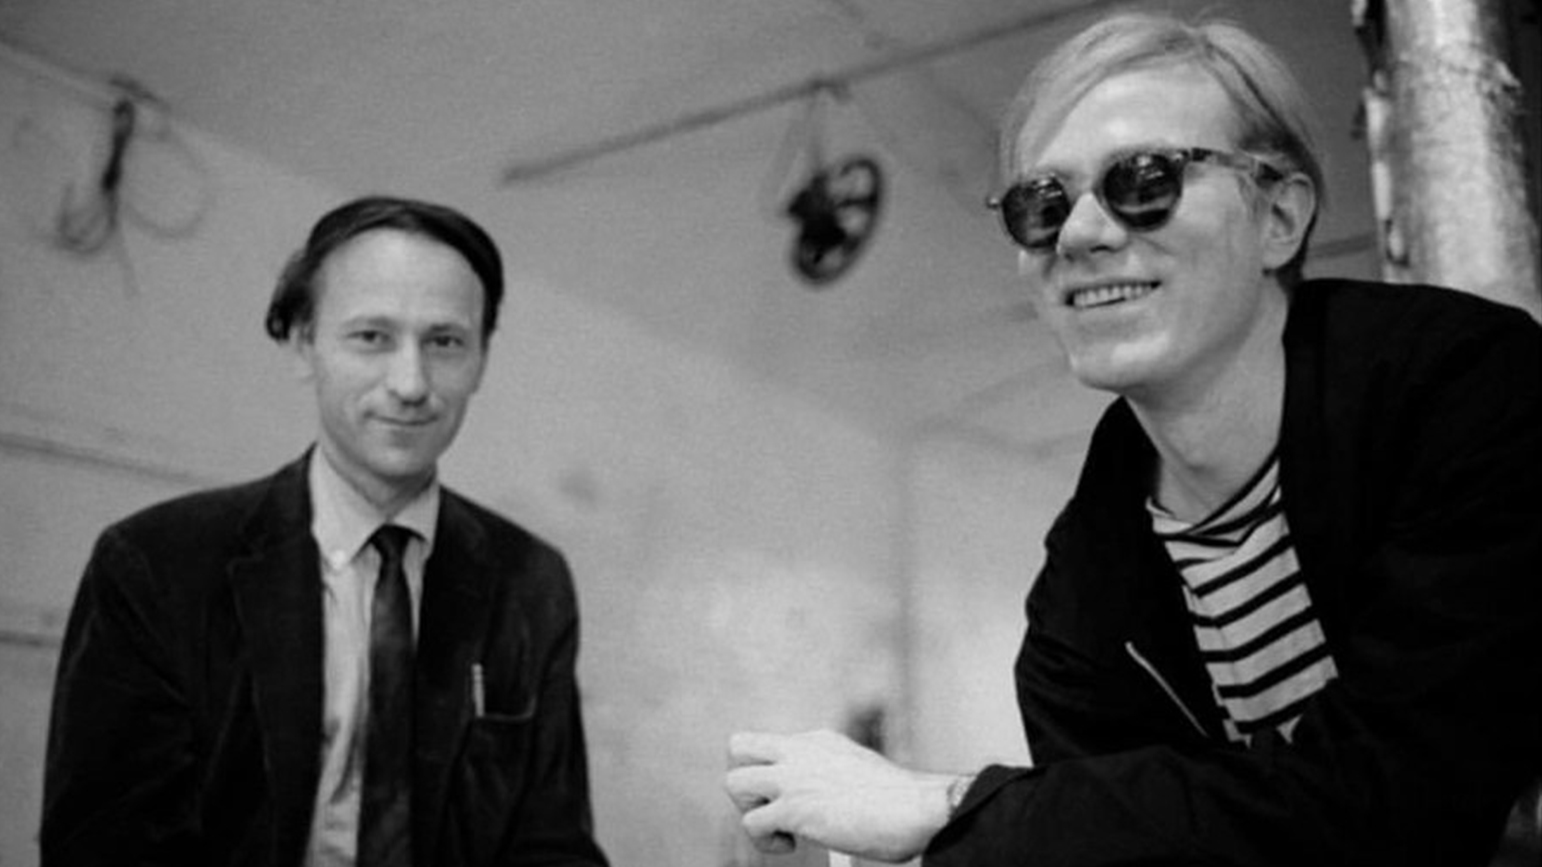 Black and white photograph of two men sitting: Jonas Mekas and Andy Warhol